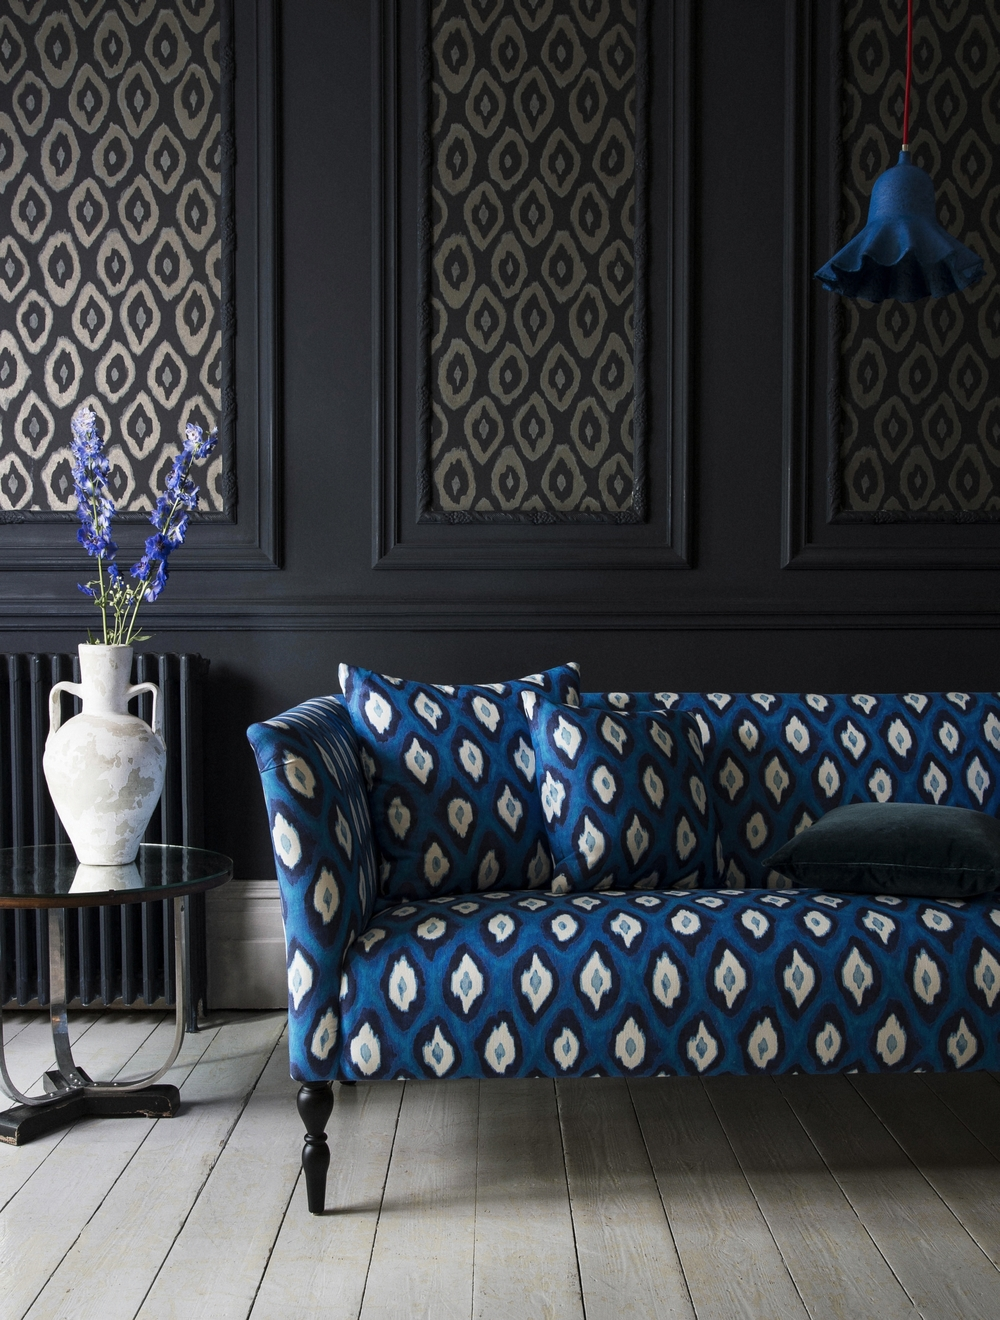 Avalon two seat sofa in Electric Ikat Cobalt £1,090, large cushion £80, small cushion £70